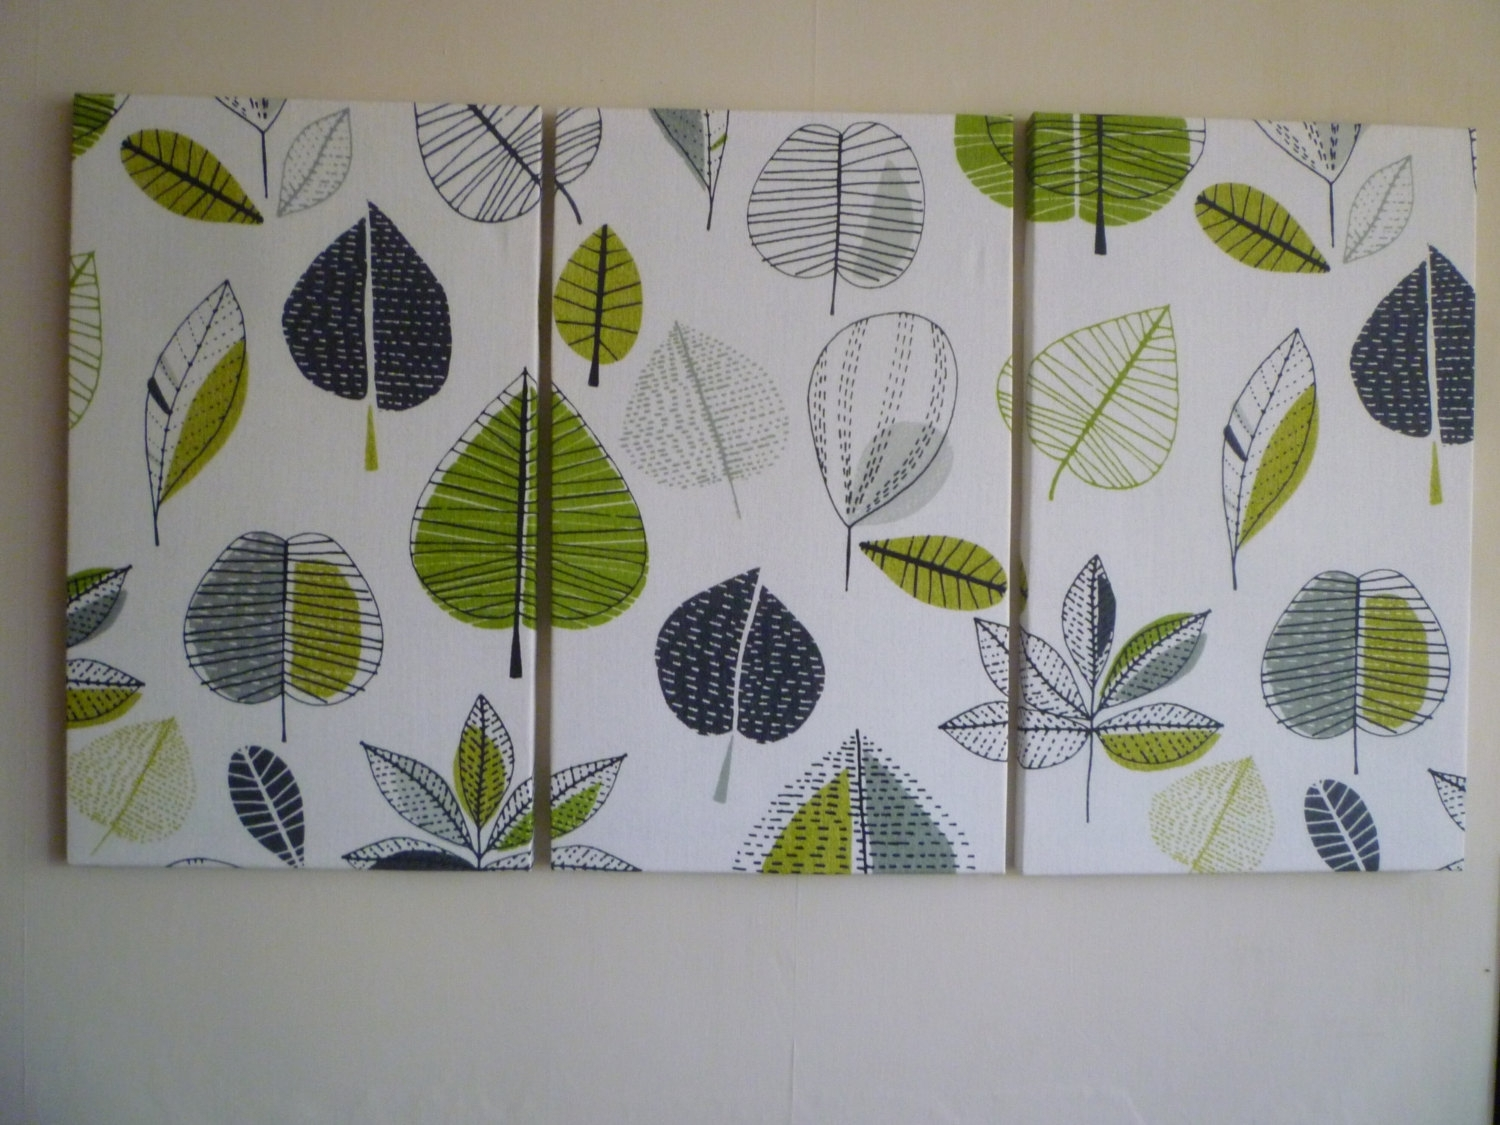 Wall Art Designs: Fabric Wall Art Big Lime Green Fabric Wall Art With Regard To Best And Newest Fabric Wall Art Panels (View 12 of 15)